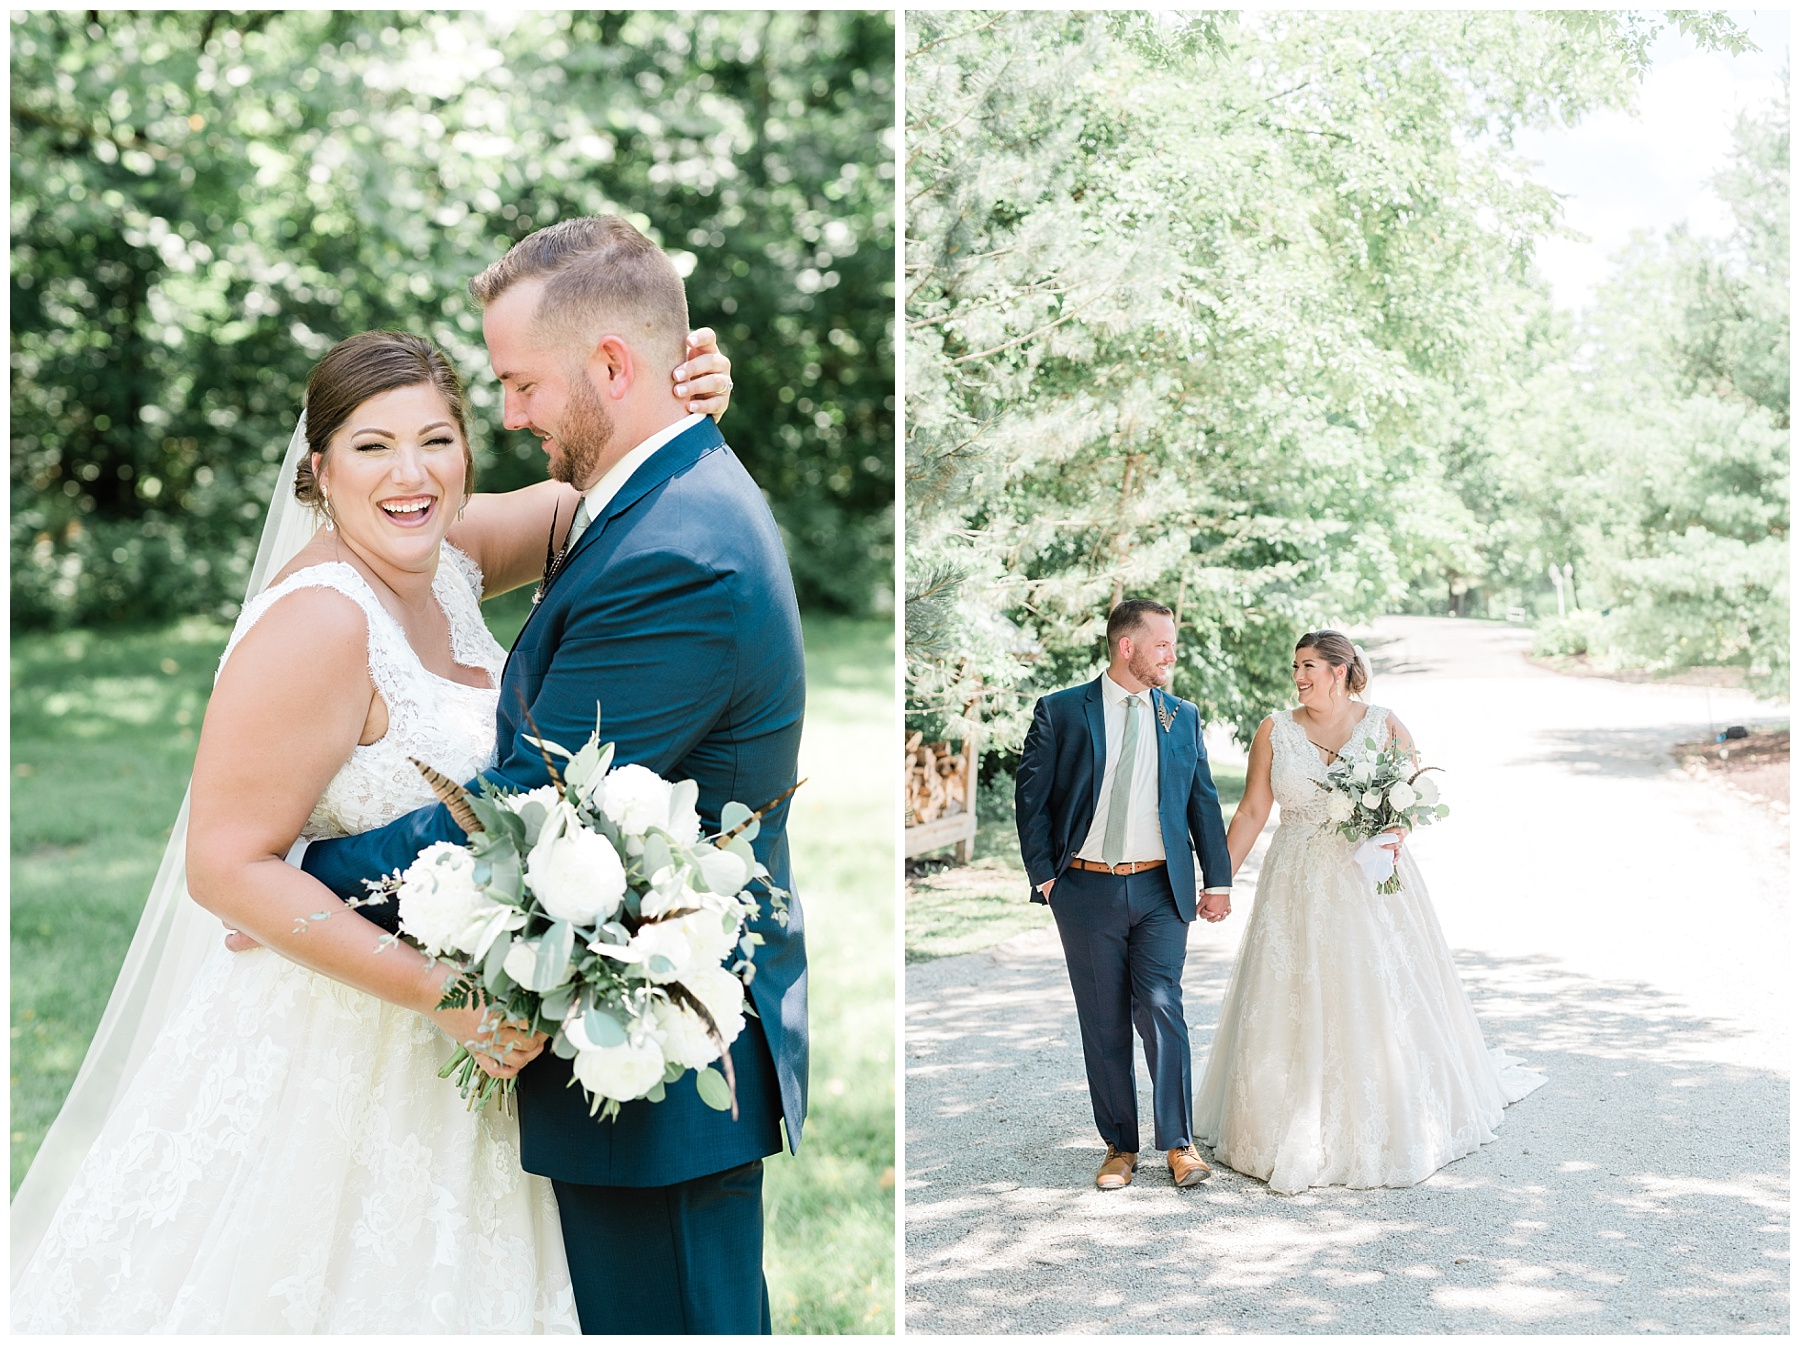 Montana Couple Married Lakeside with Mountain Themed Wedding At Little Piney Lodge Hermann MO by Kelsi Kliethermes Photography_0012.jpg